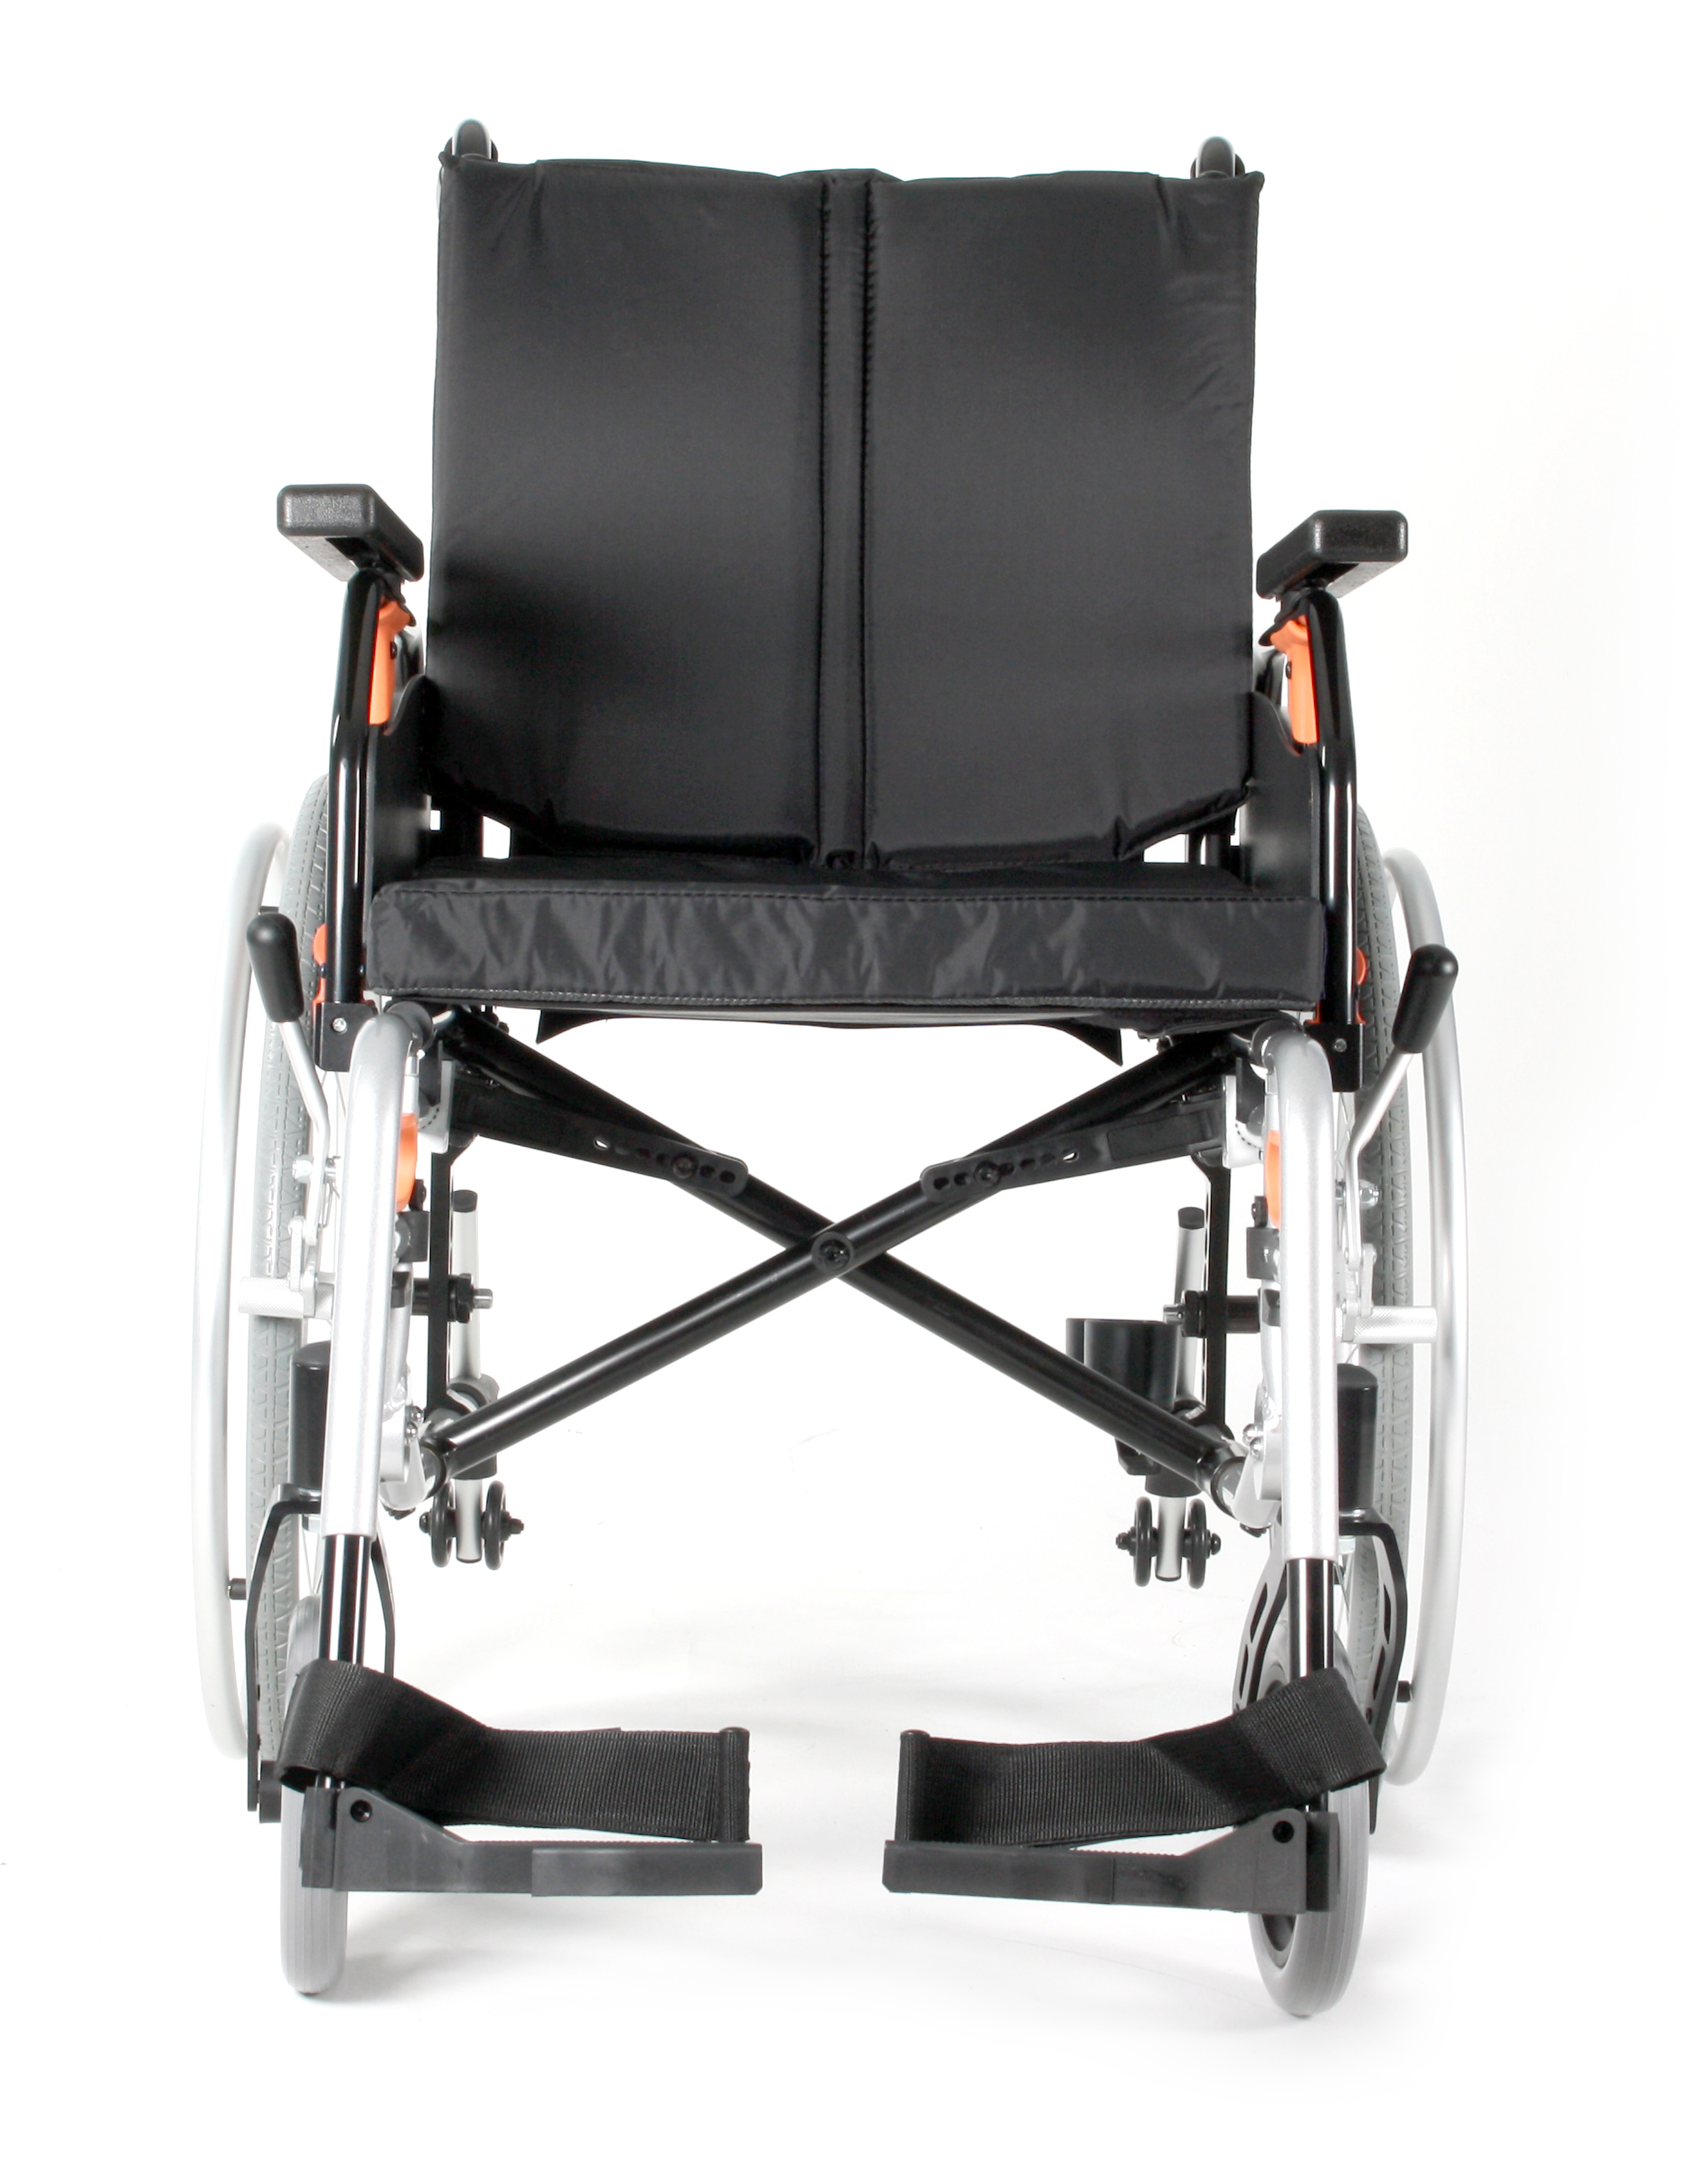 Sensational Excel G Modular Wheelchair Inzonedesignstudio Interior Chair Design Inzonedesignstudiocom